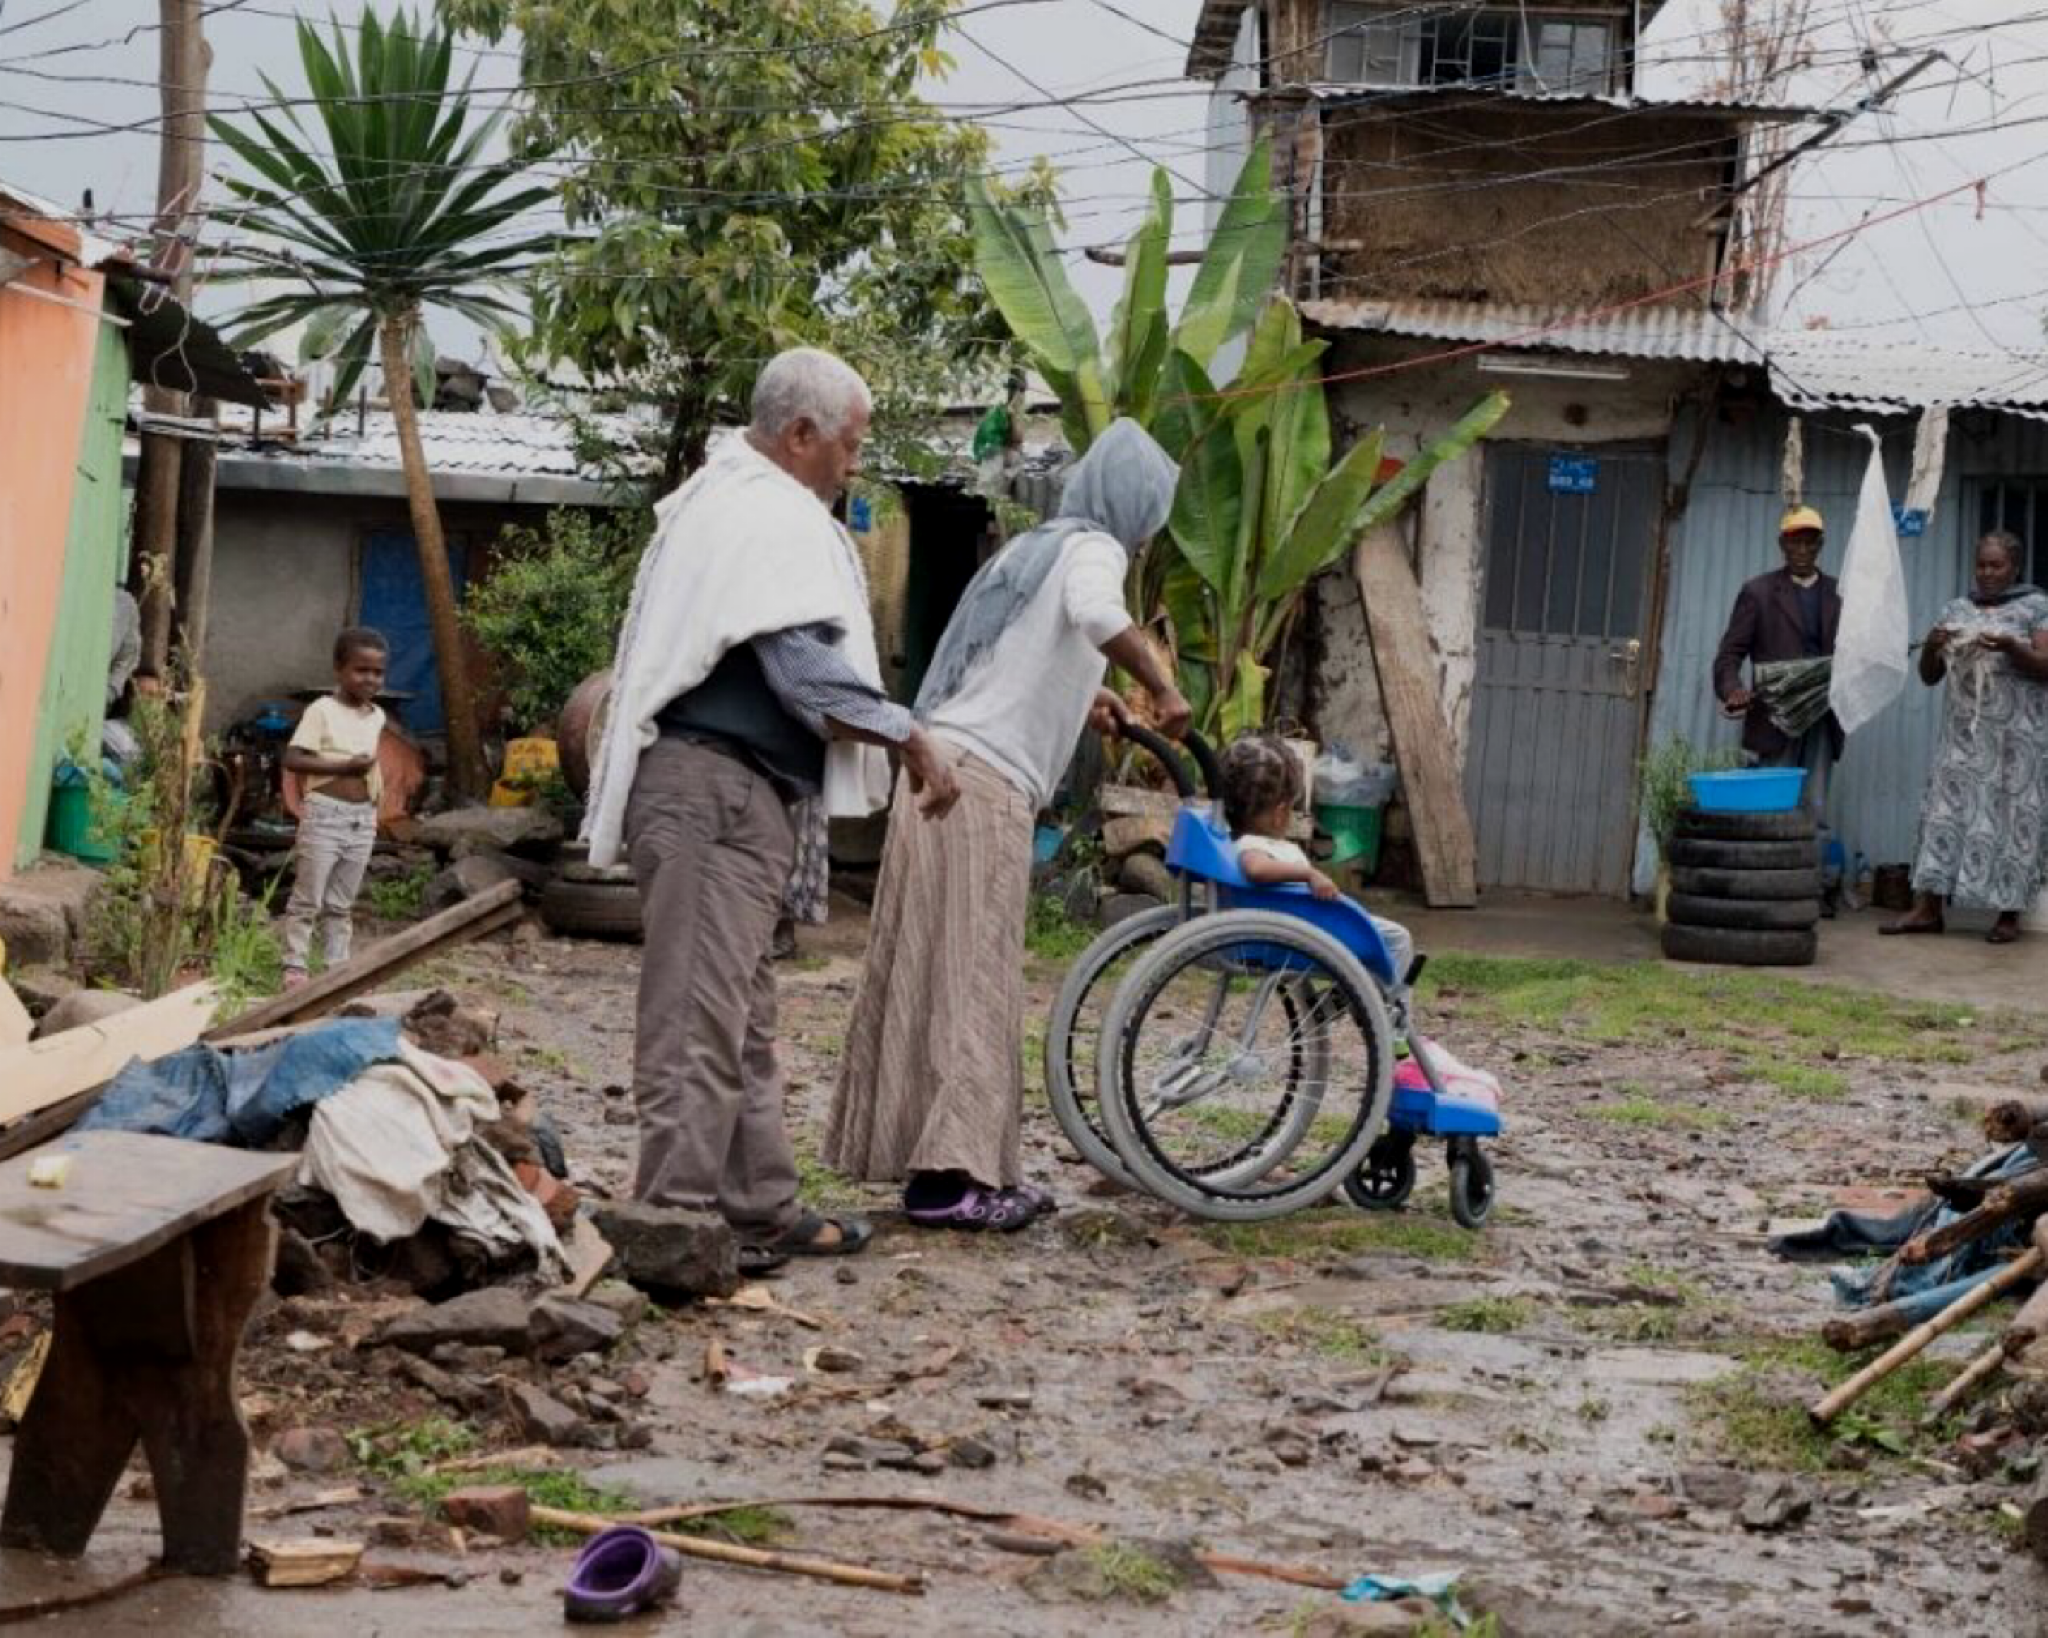 parents pushing child in wheelchair through the mud